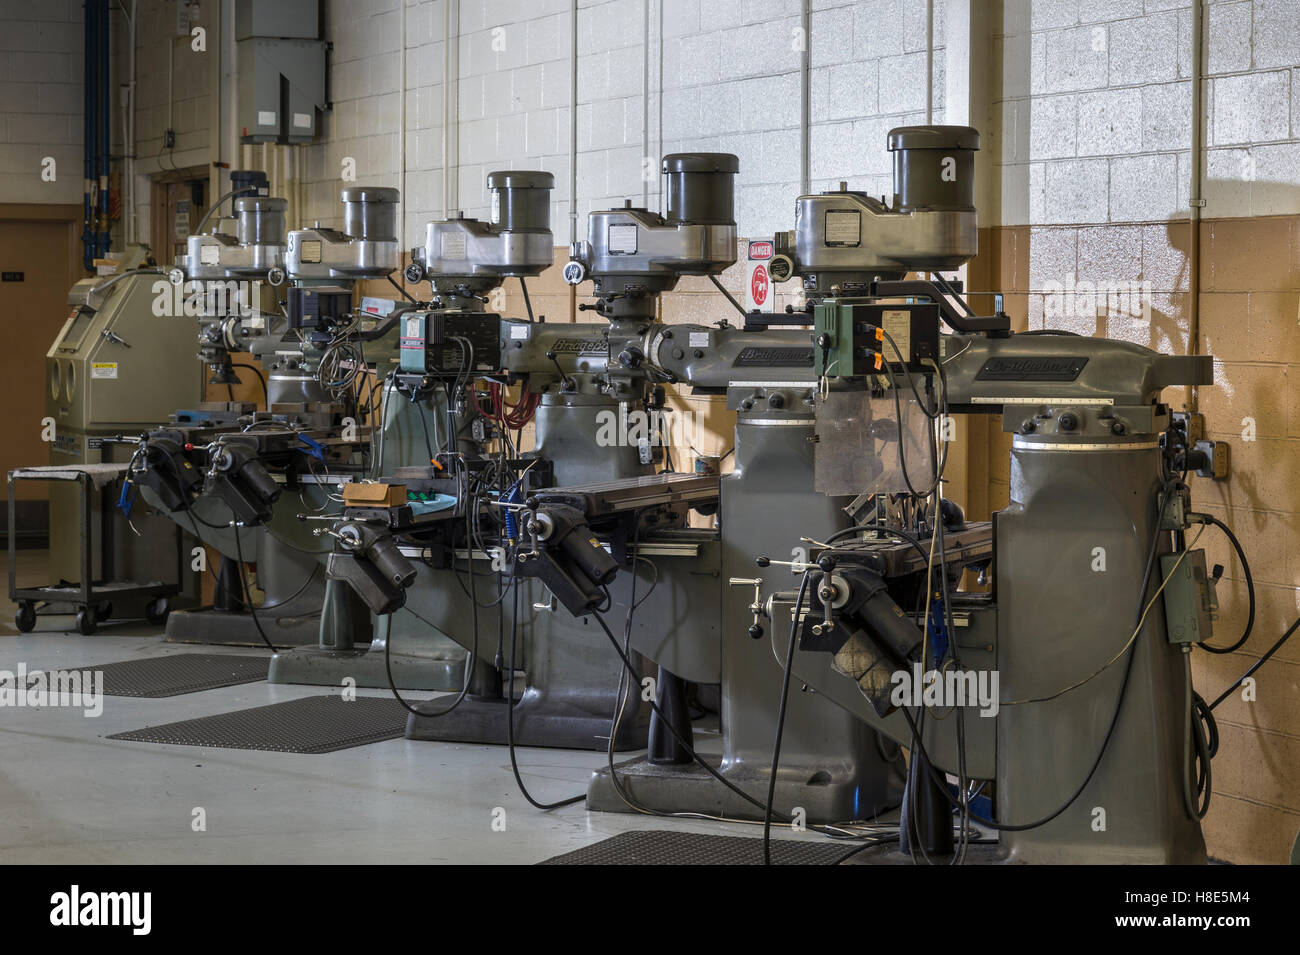 Row Of Industrial Drill Presses In Machine Shop - Stock Image